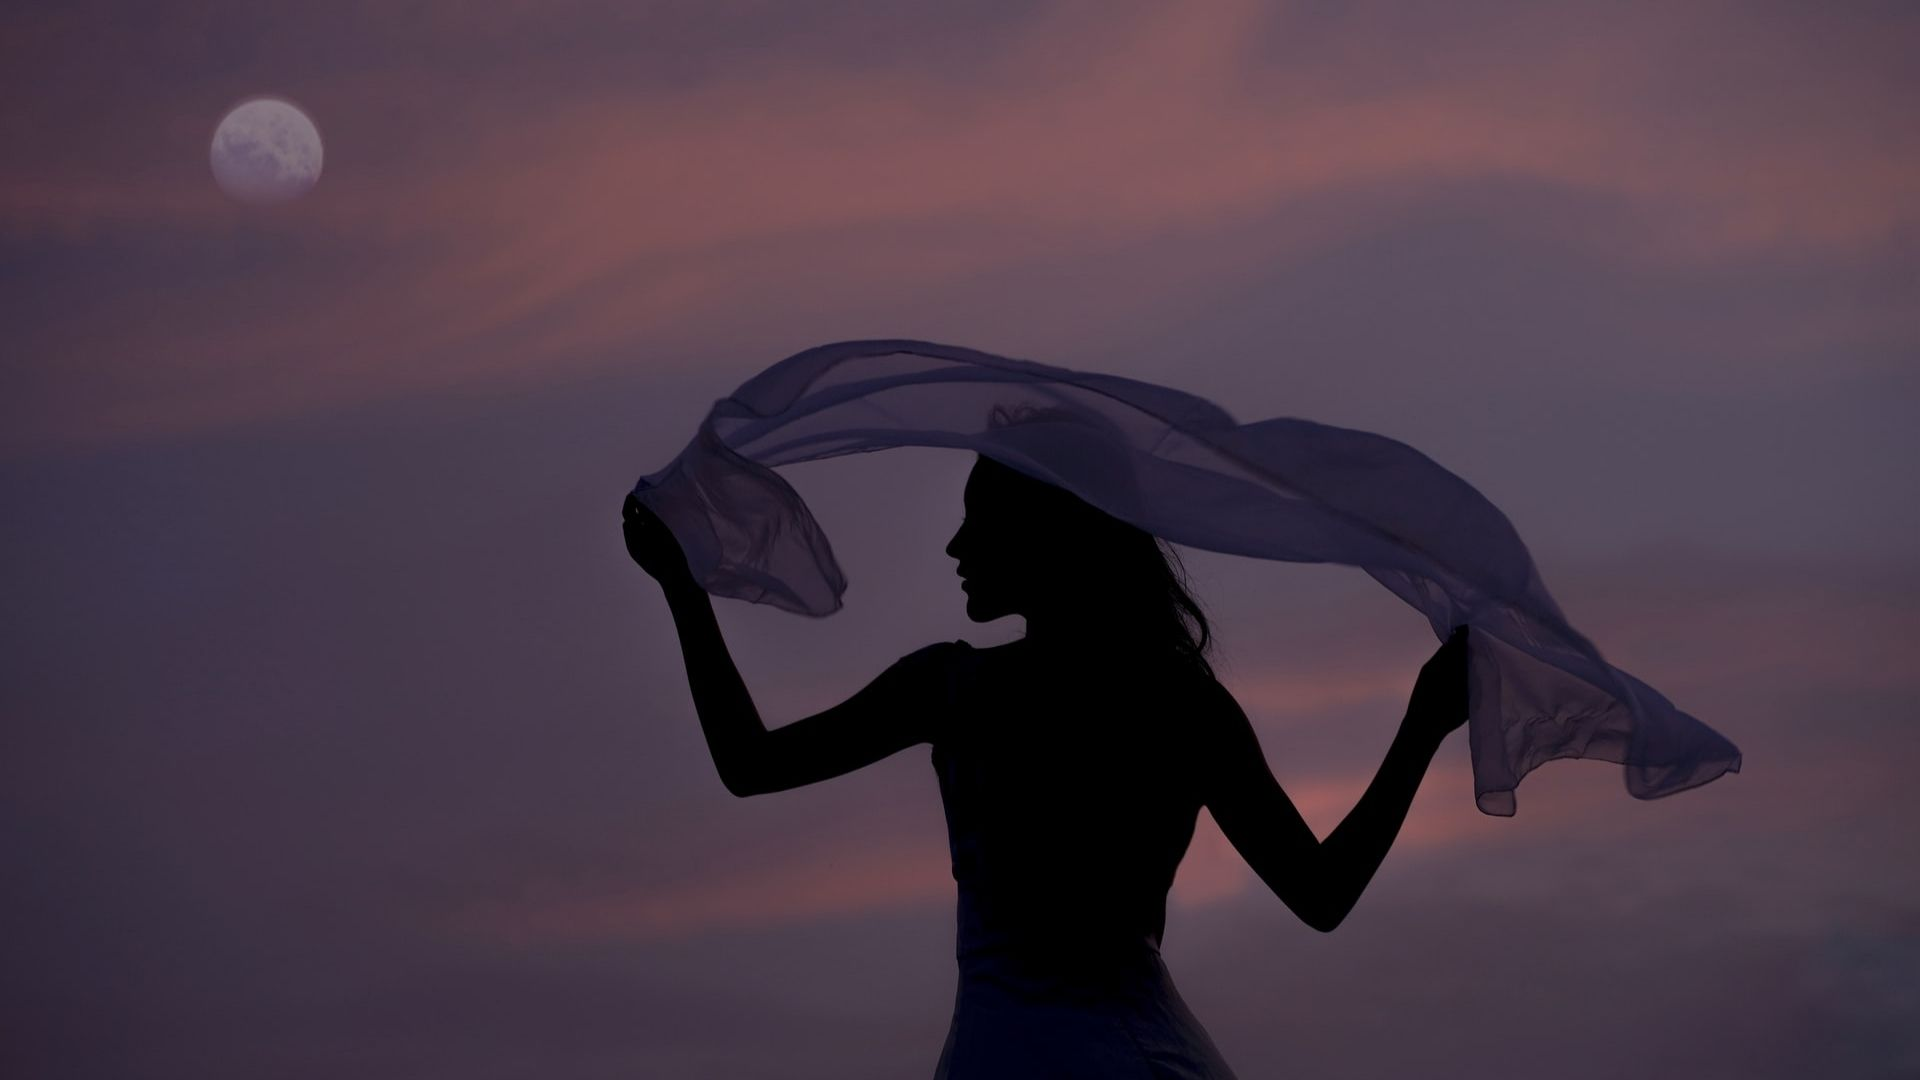 a woman holding a shawl with the sunset and the moon as a backdrop